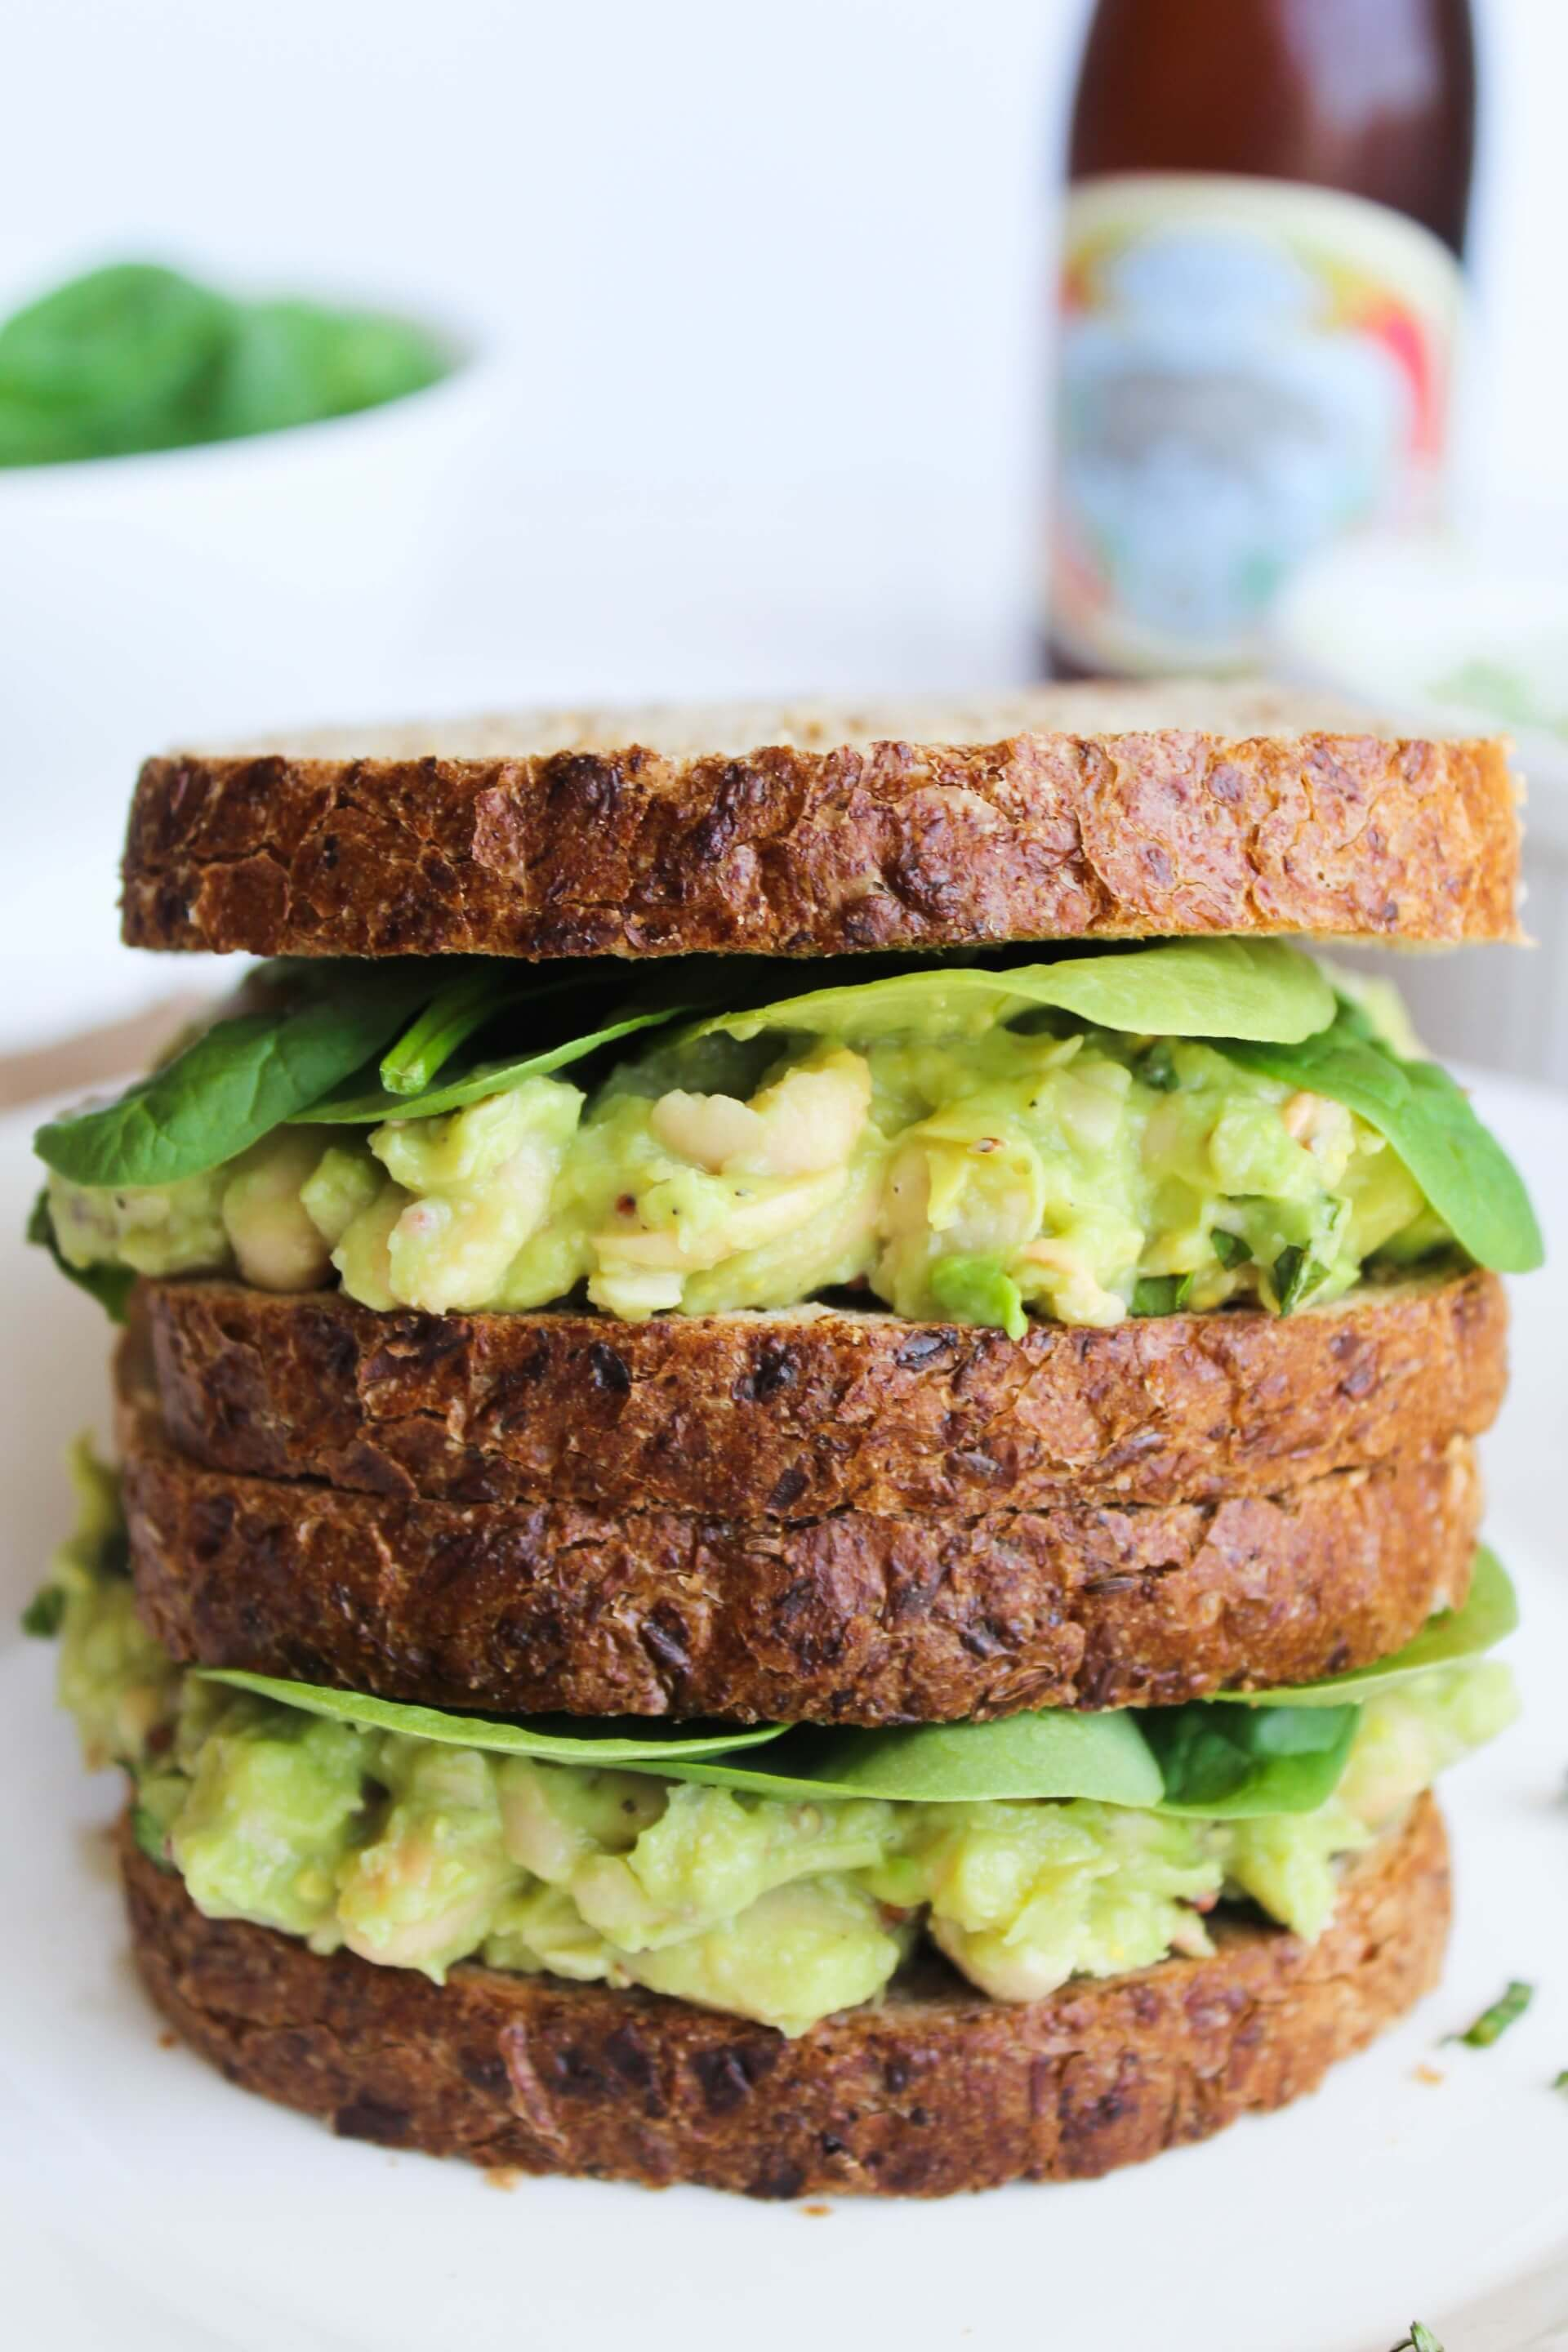 Vegan White Bean, Basil, & Avocado Sandwich